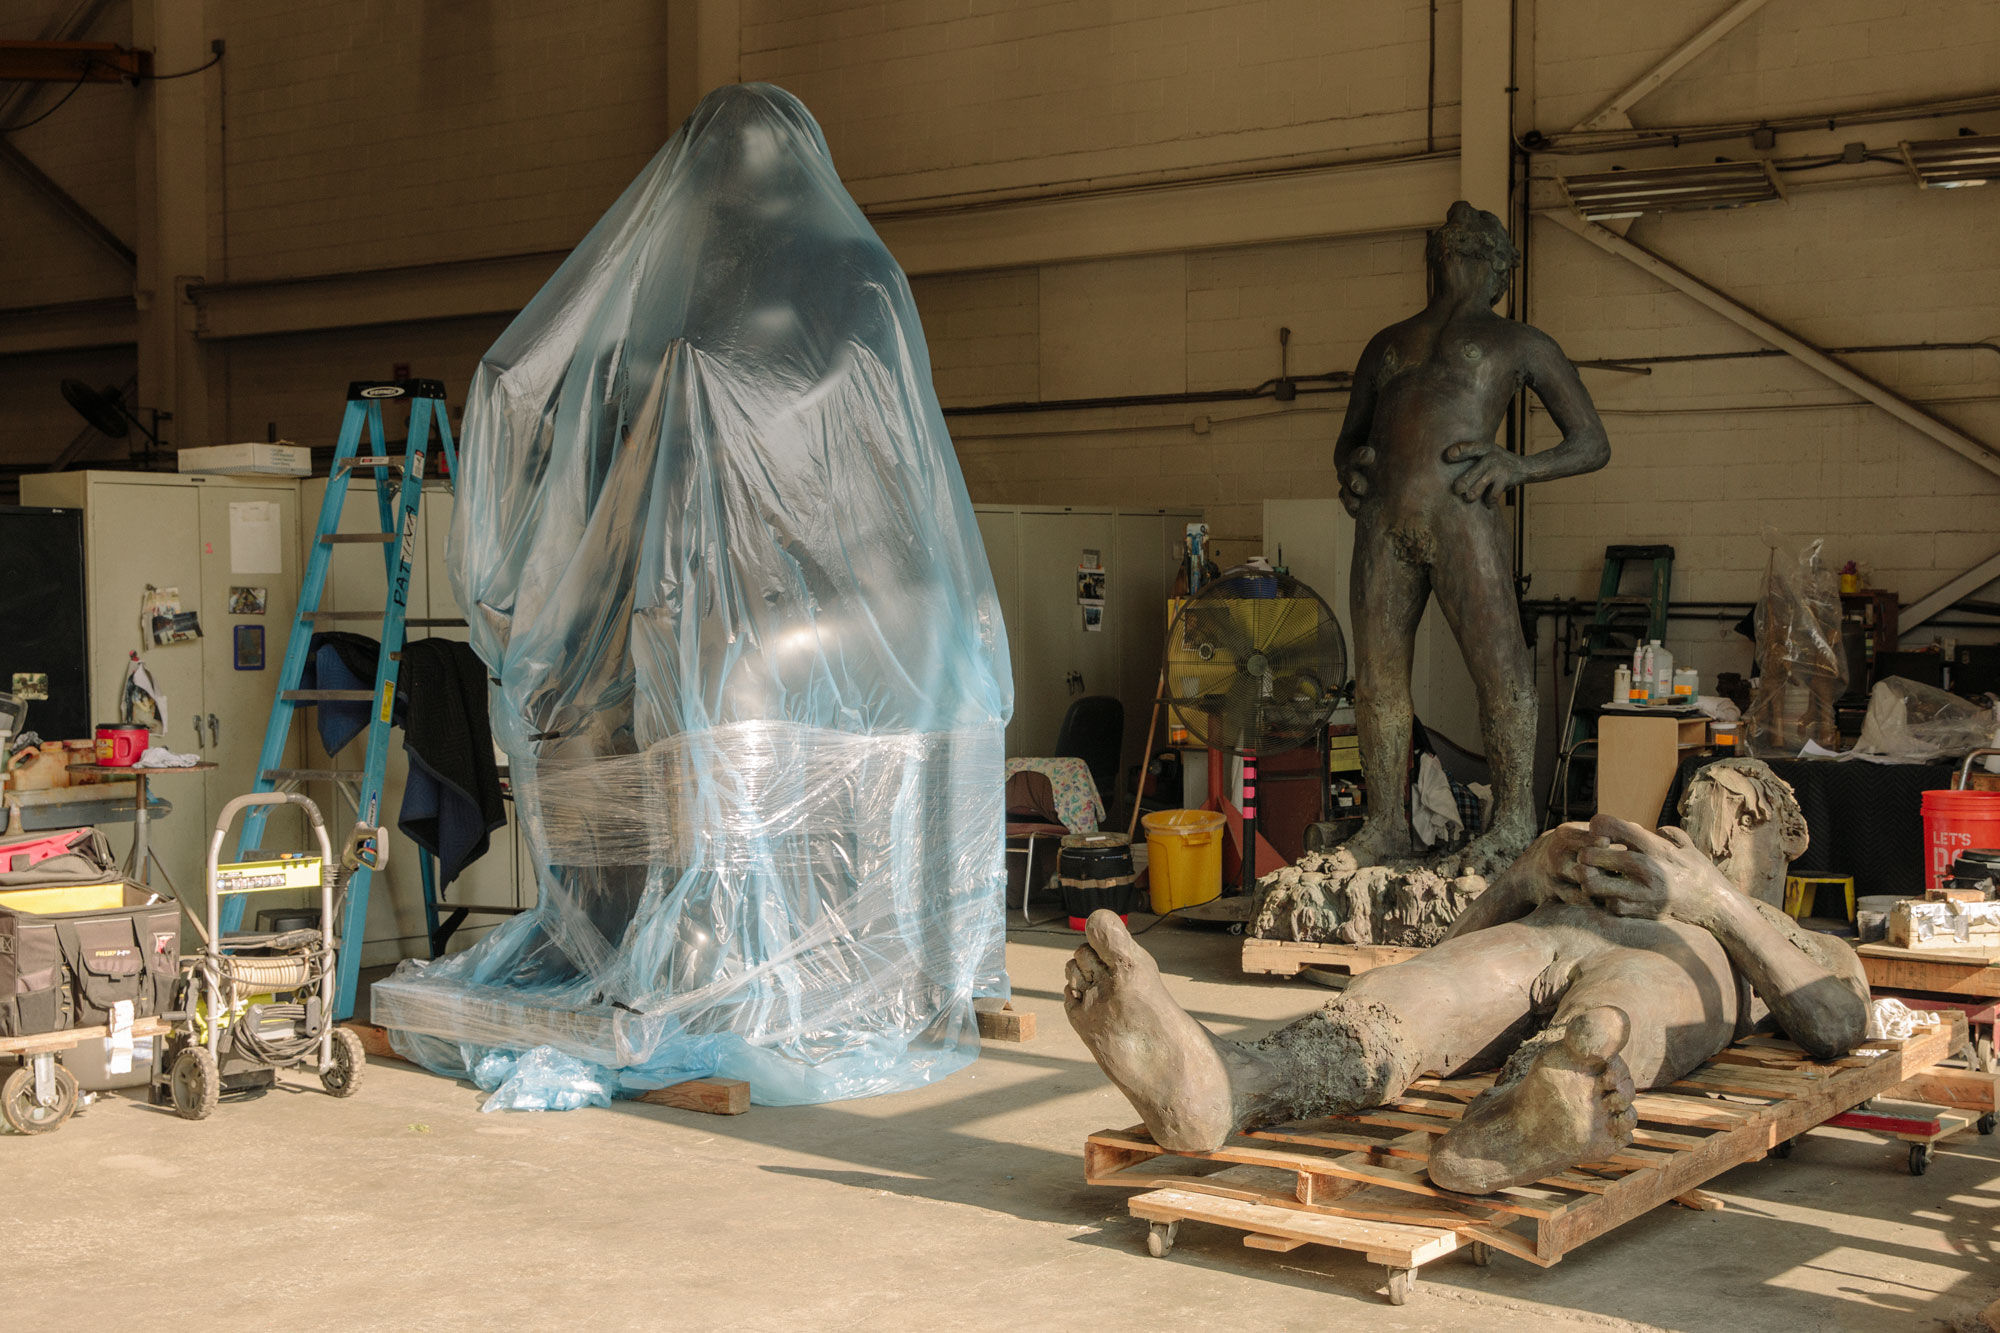 Works by Fernando Botero and Nicole Eisenman in the Polich Tallix art foundry. Photo by Ricky Rhodes for Artsy.